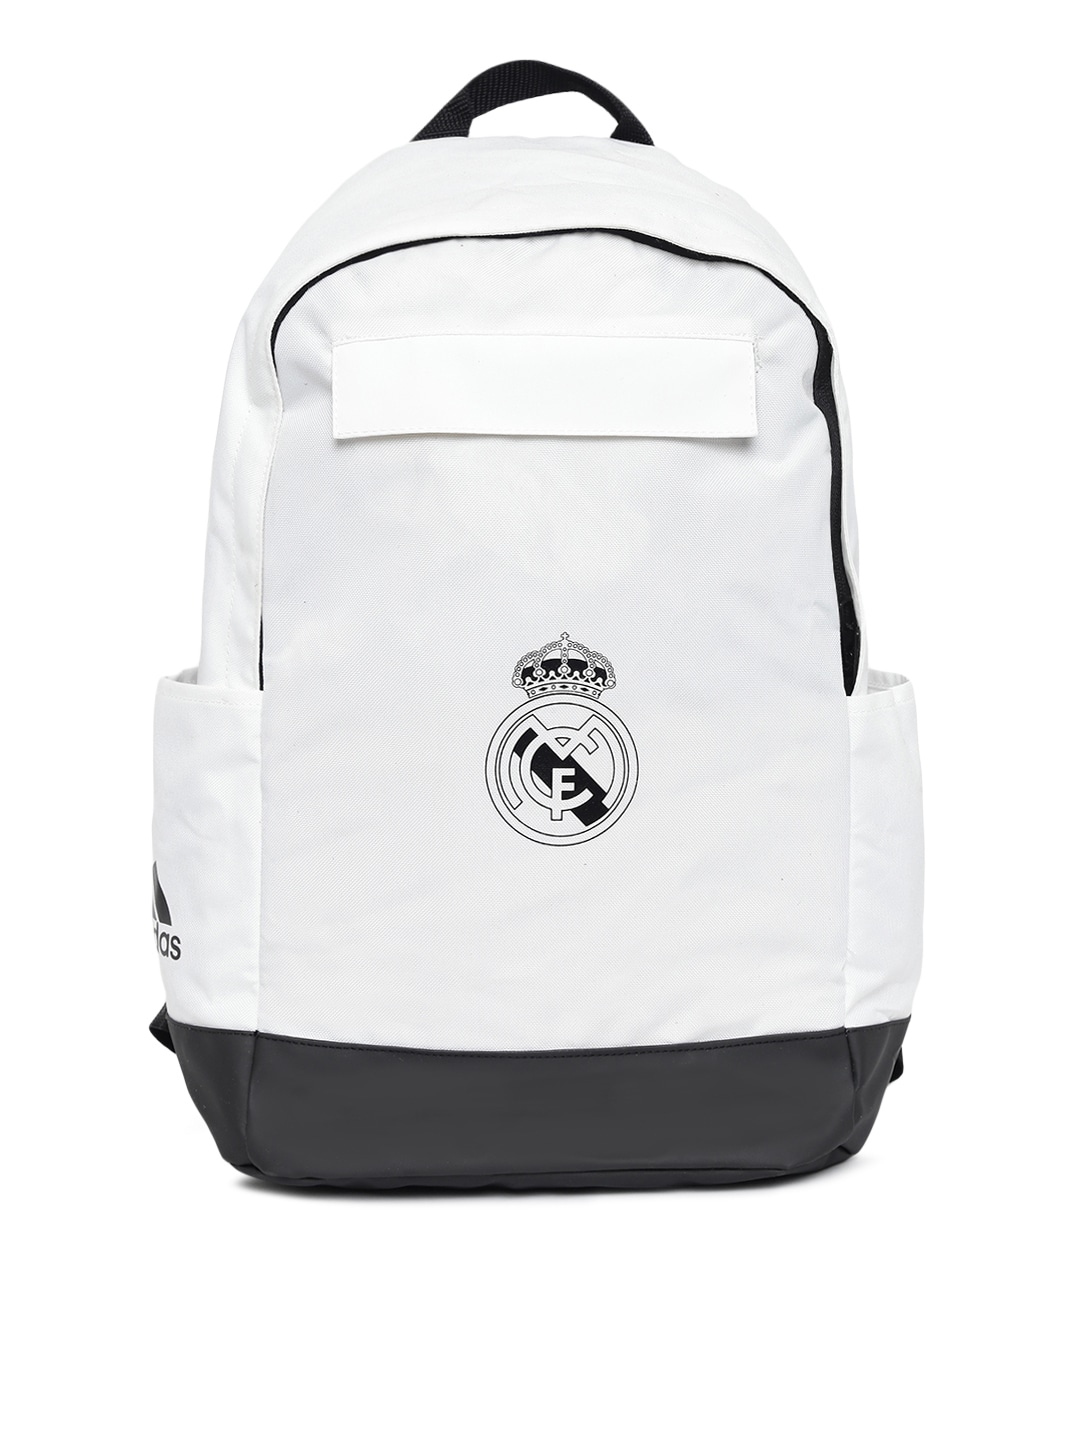 Nike Adidas Bags Backpacks - Buy Nike Adidas Bags Backpacks online in India a05ad69f4d182